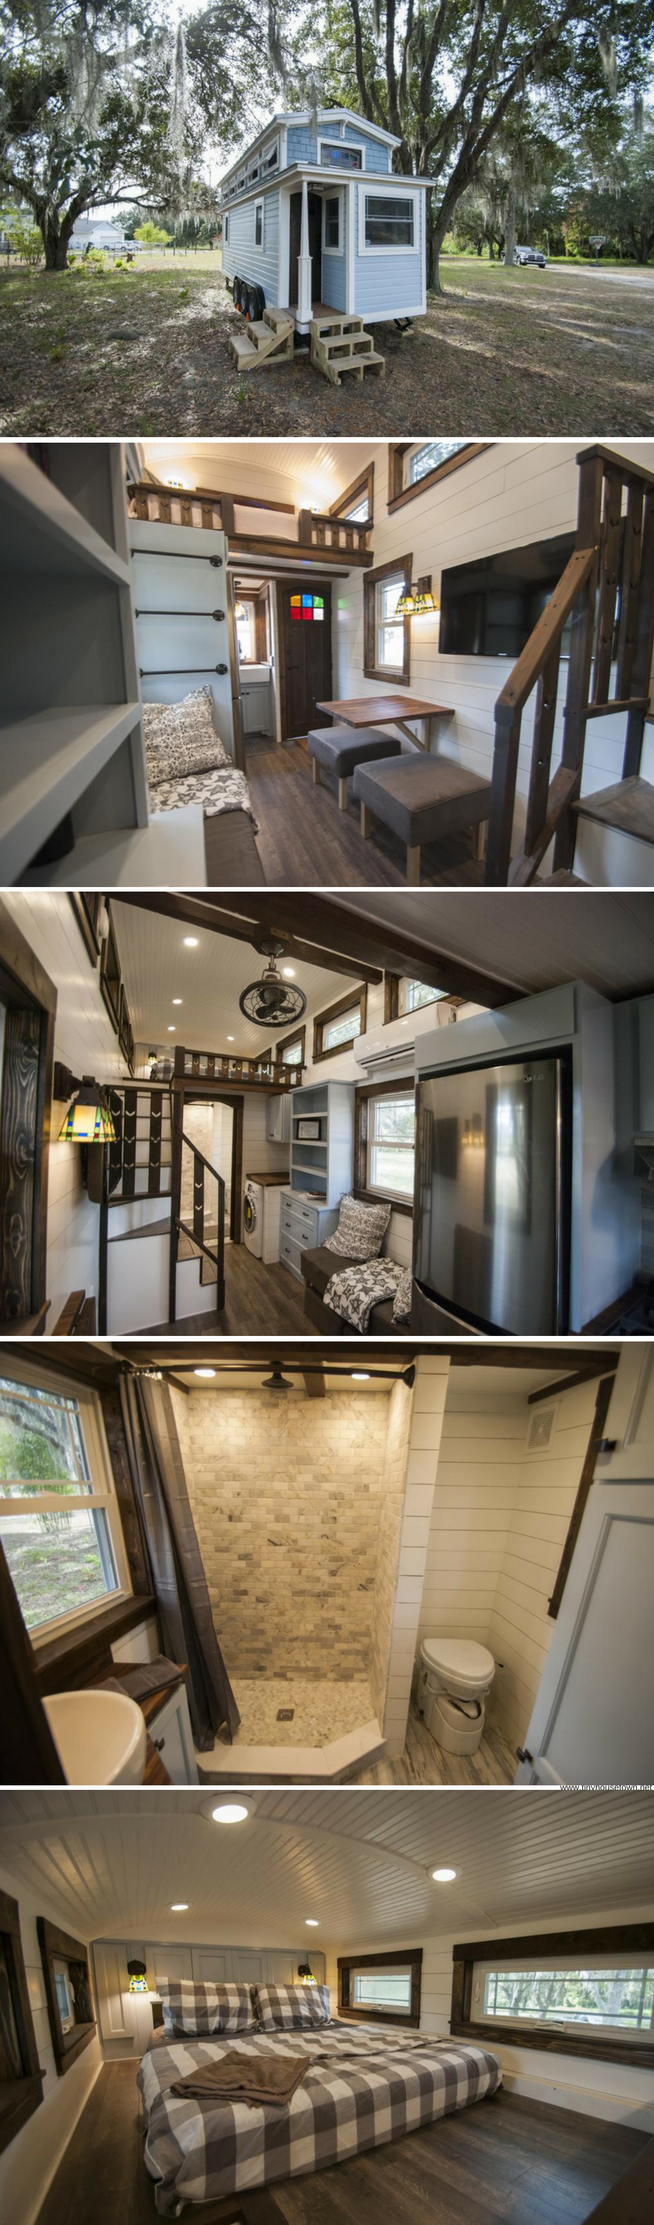 Tiny houses on pinterest - A Stunning Luxury Tiny House For Sale In Davenport Fl